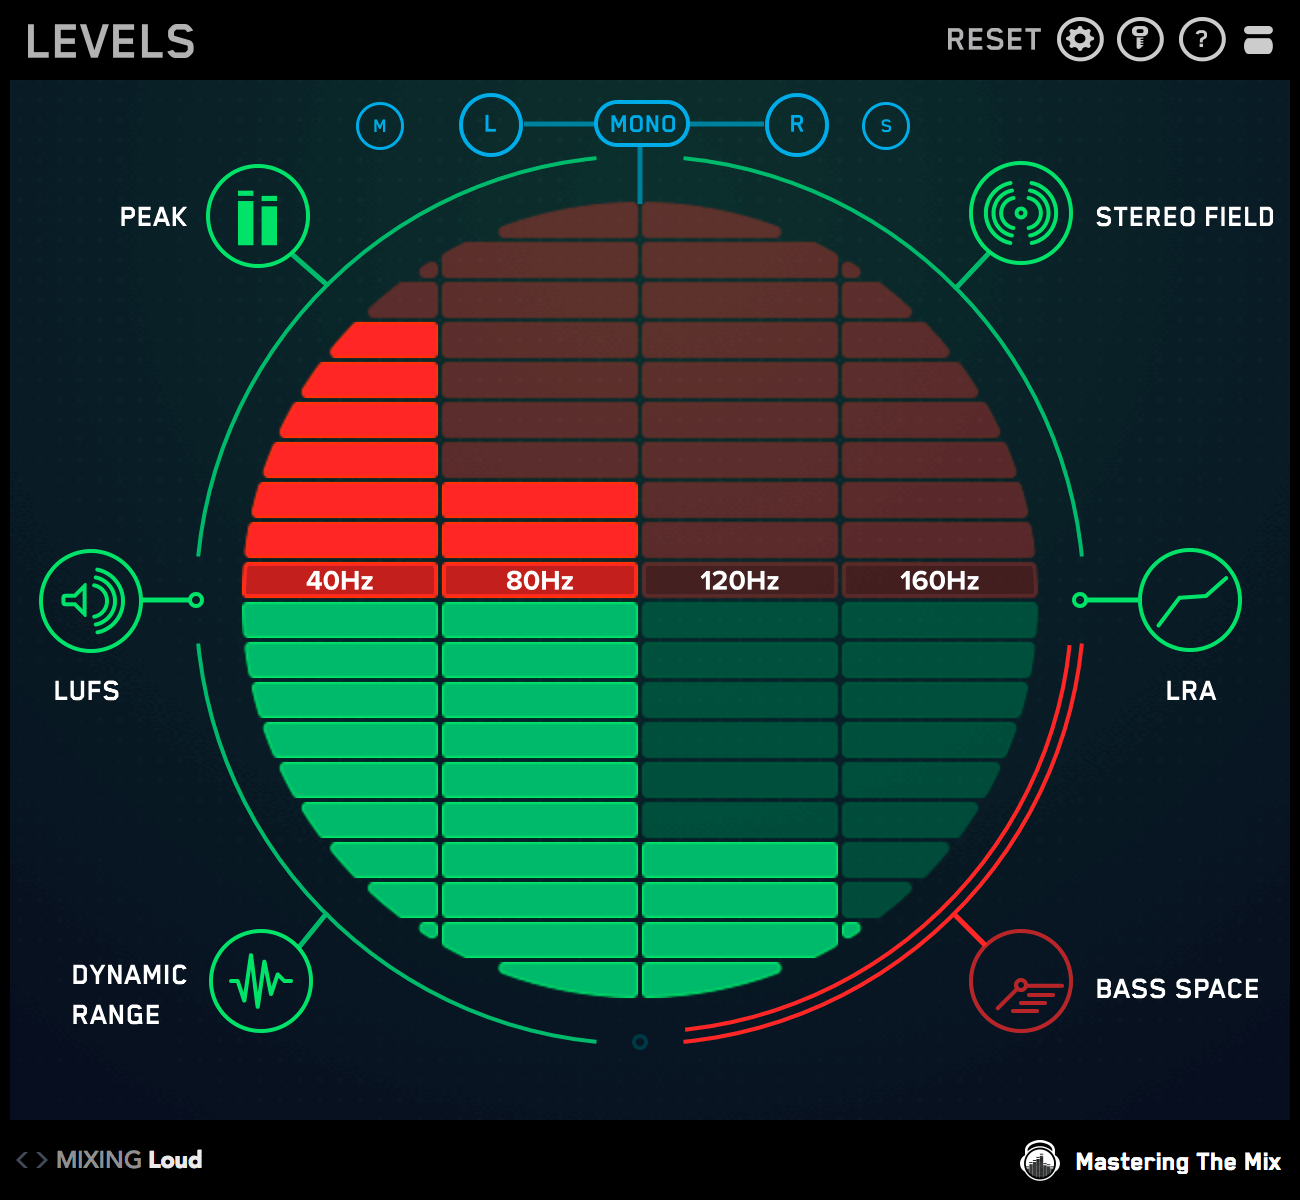 Bass Space LEVELS